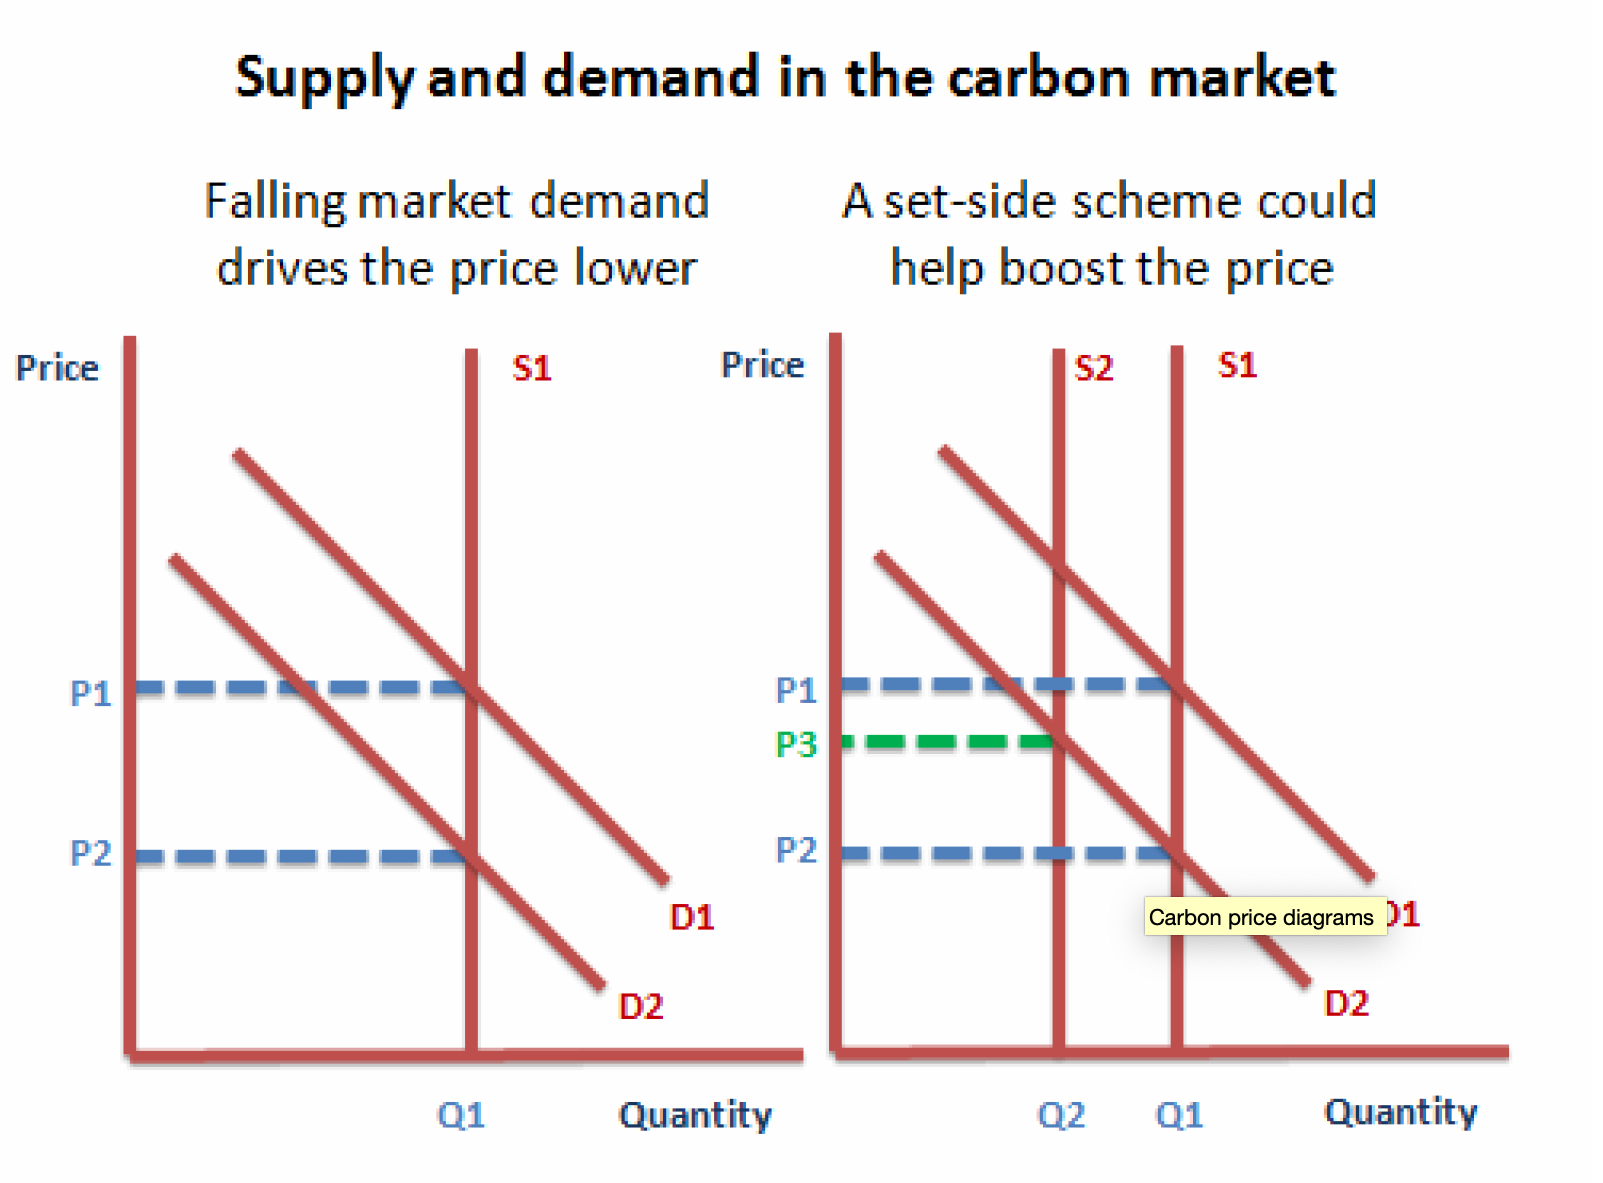 Riley, G. (2012)  Unit 1 Micro: The Collapsing Price of Carbon,  Available at:  https://www.tutor2u.net/economics/blog/unit-1-micro-the-collapsing-price-of-carbon  (Accessed: 13th October 2019).